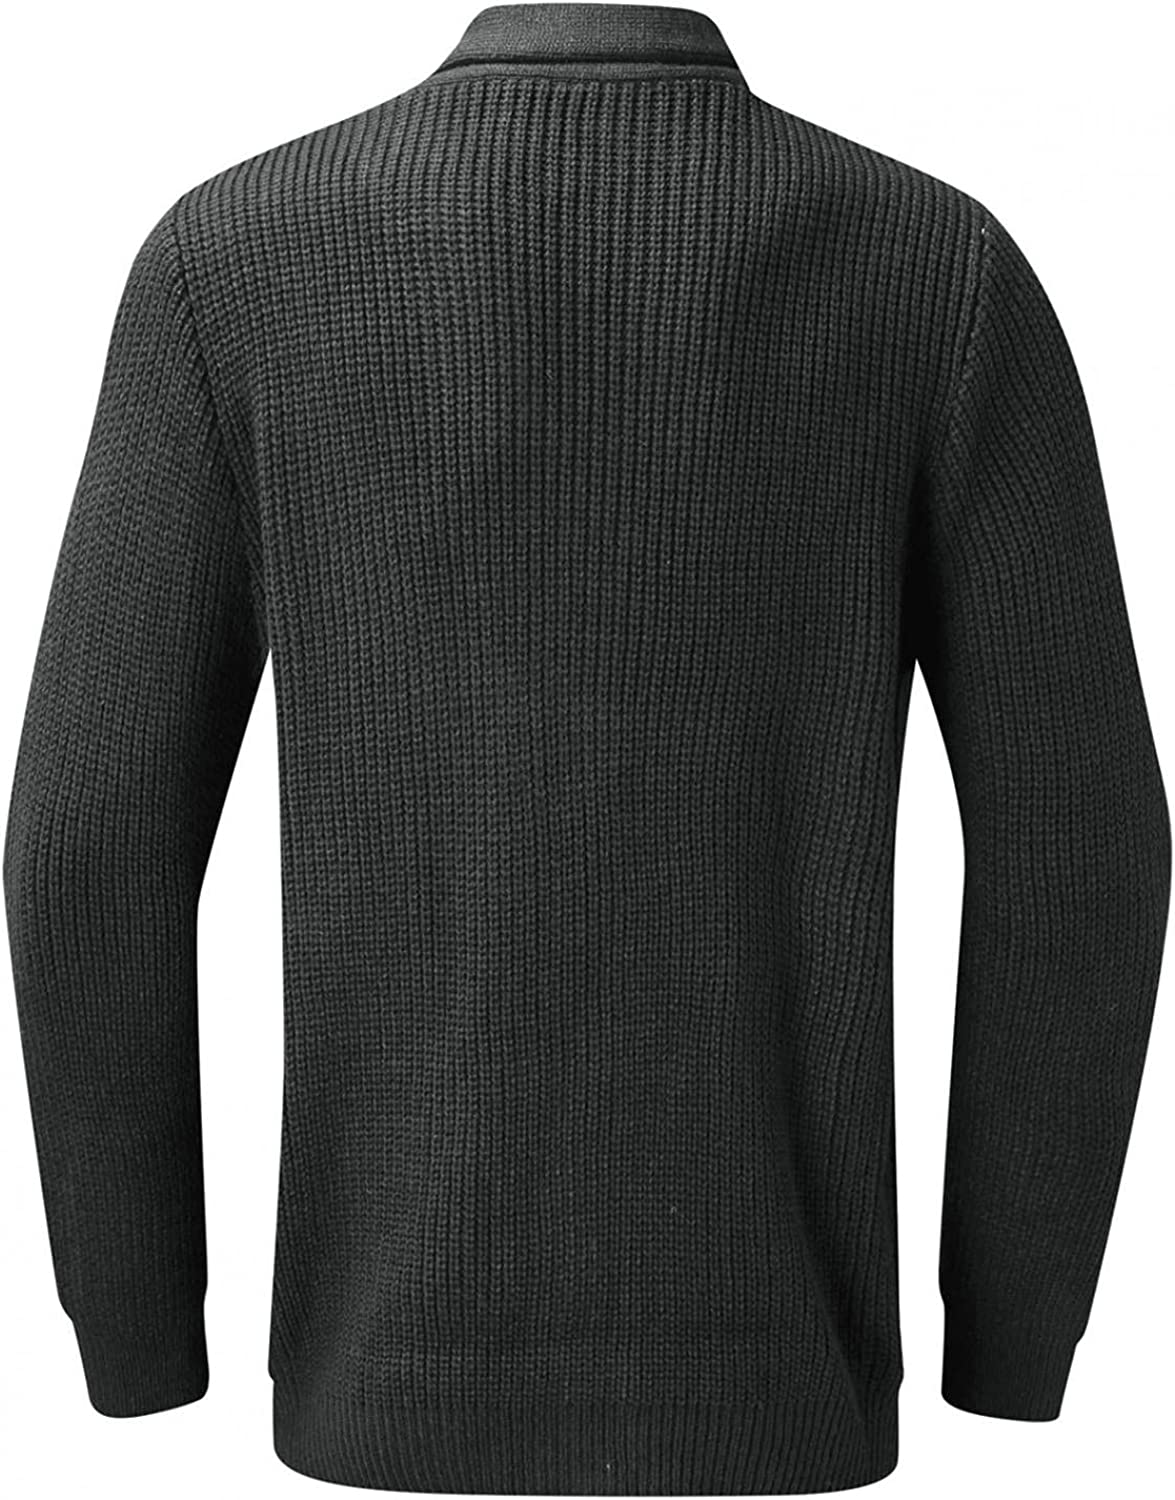 LEIYAN Mens Long Sleeve Waffle Knit Sweater Jackets Lapel Collar Button Down Casual Tunic Jumpers Coats Tops with Pockets